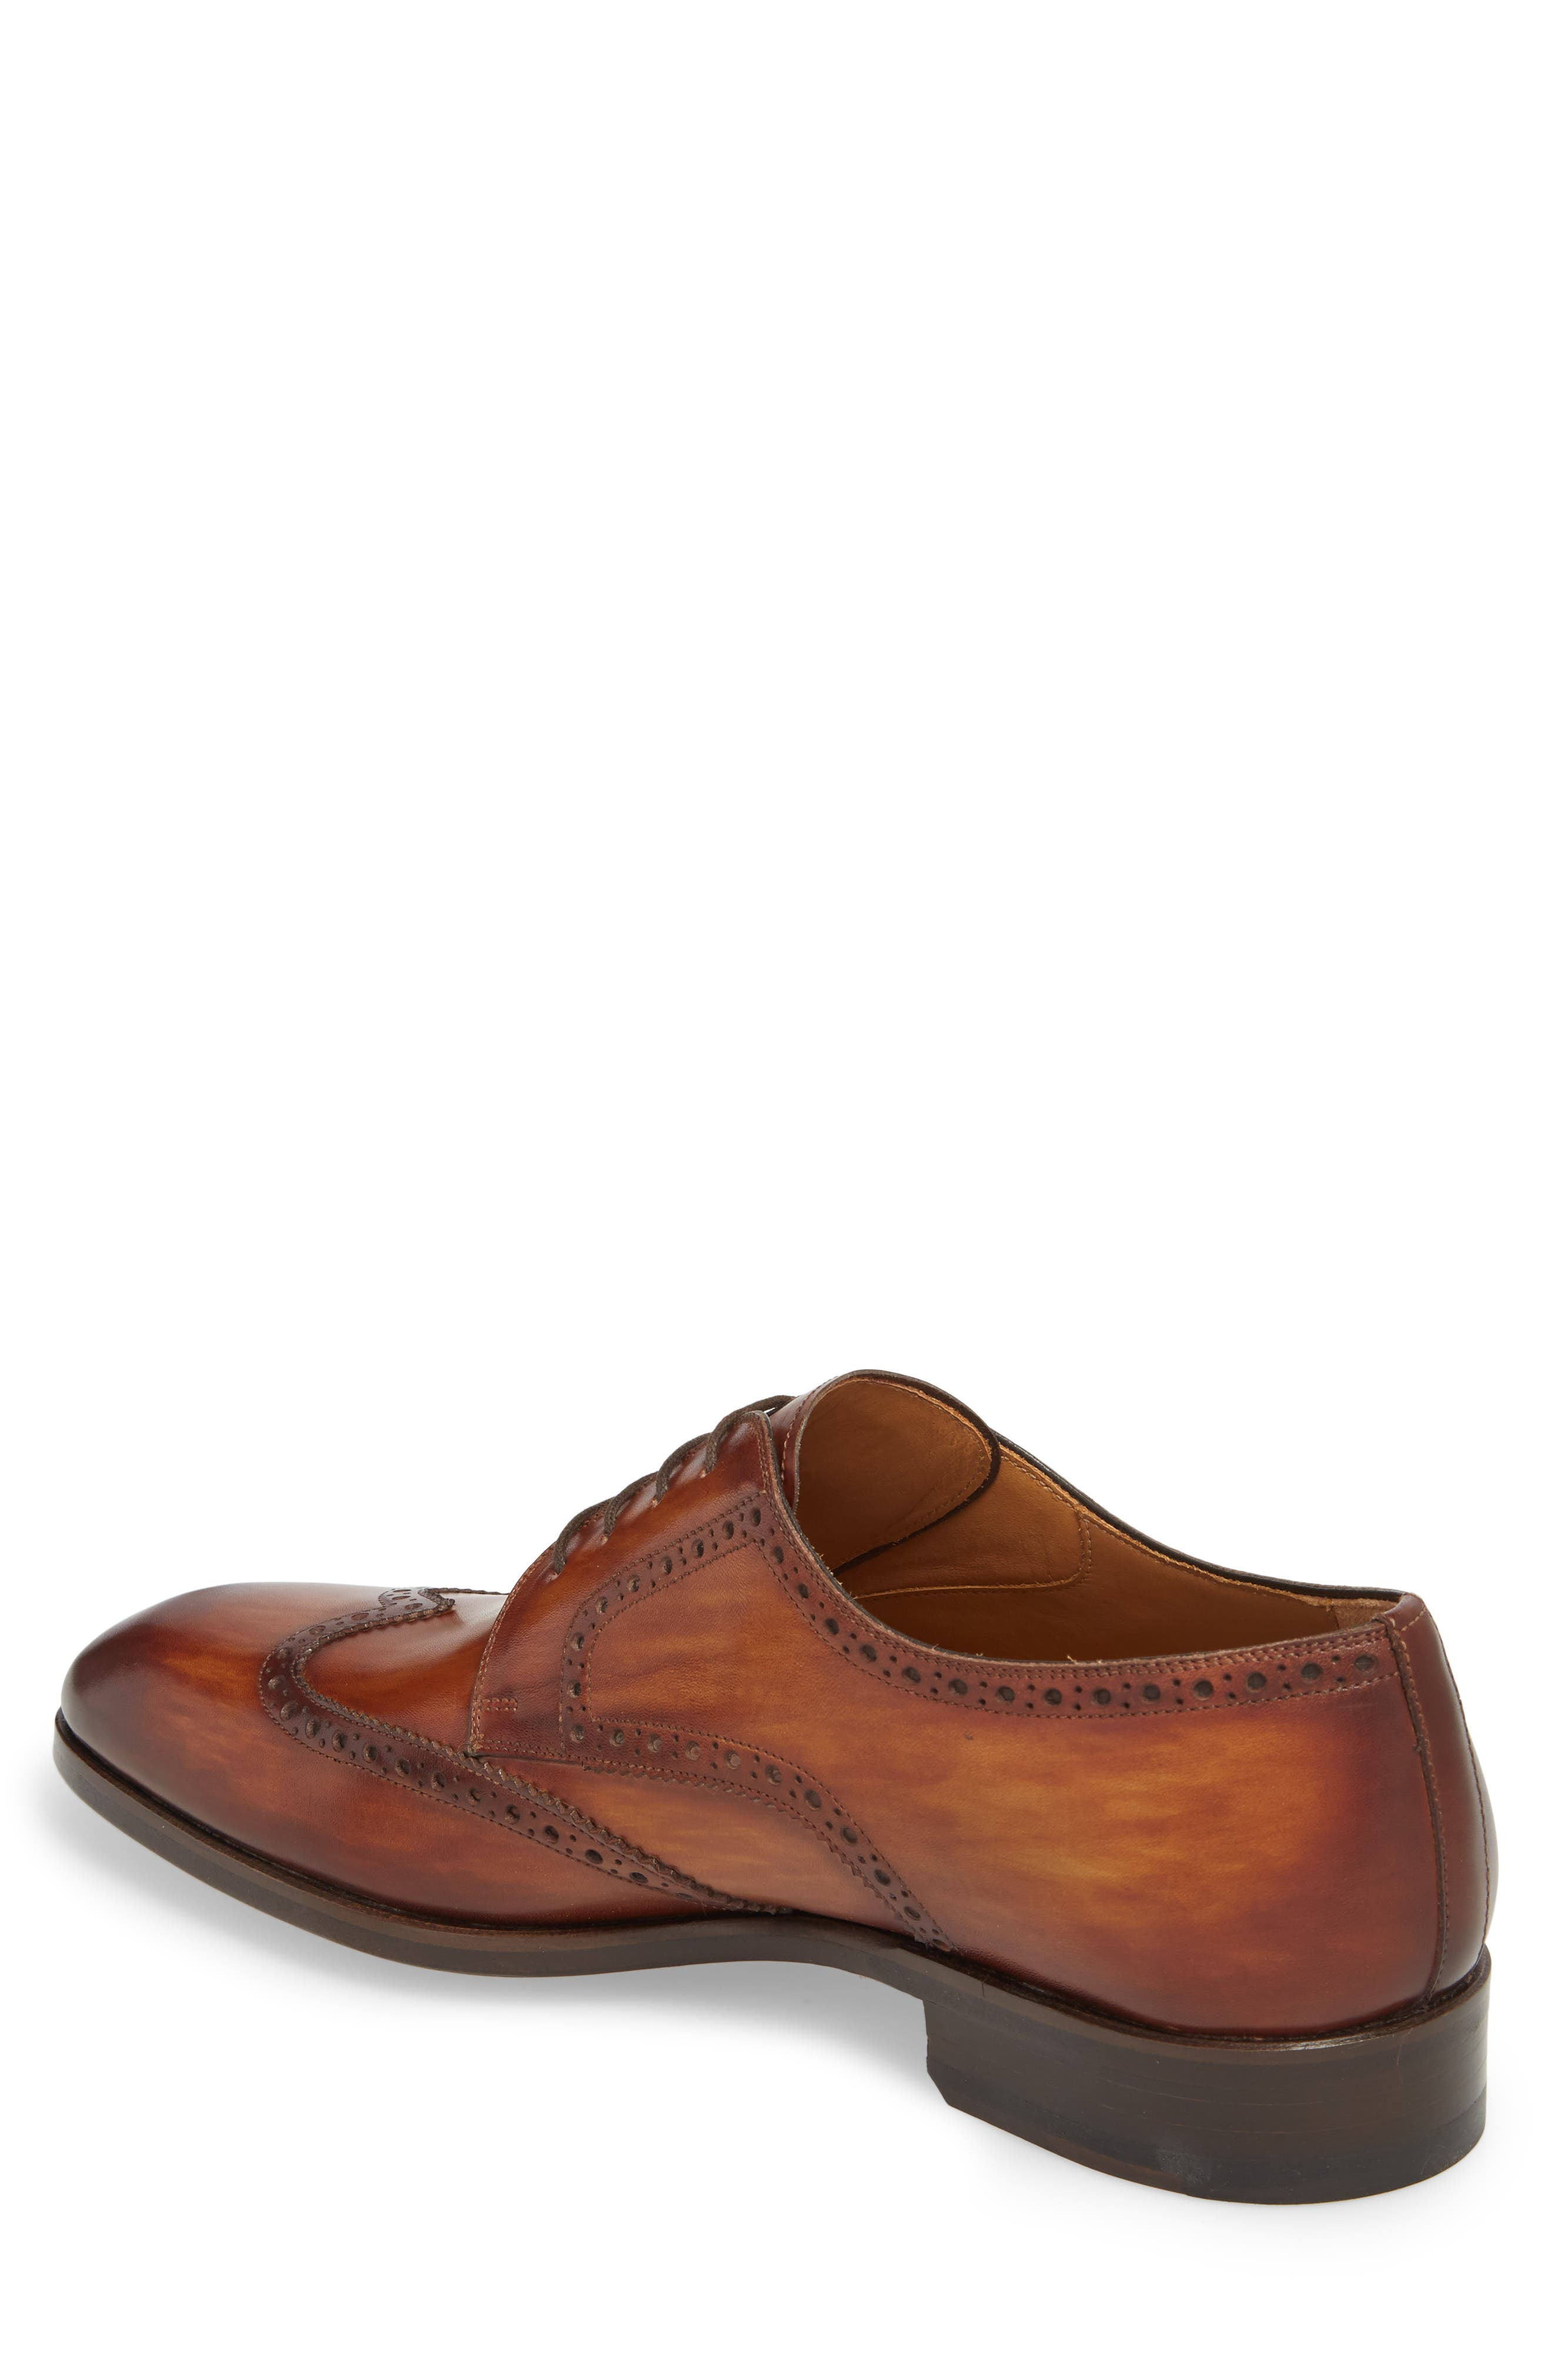 Bosco Wingtip Derby,                             Alternate thumbnail 2, color,                             BROWN LEATHER